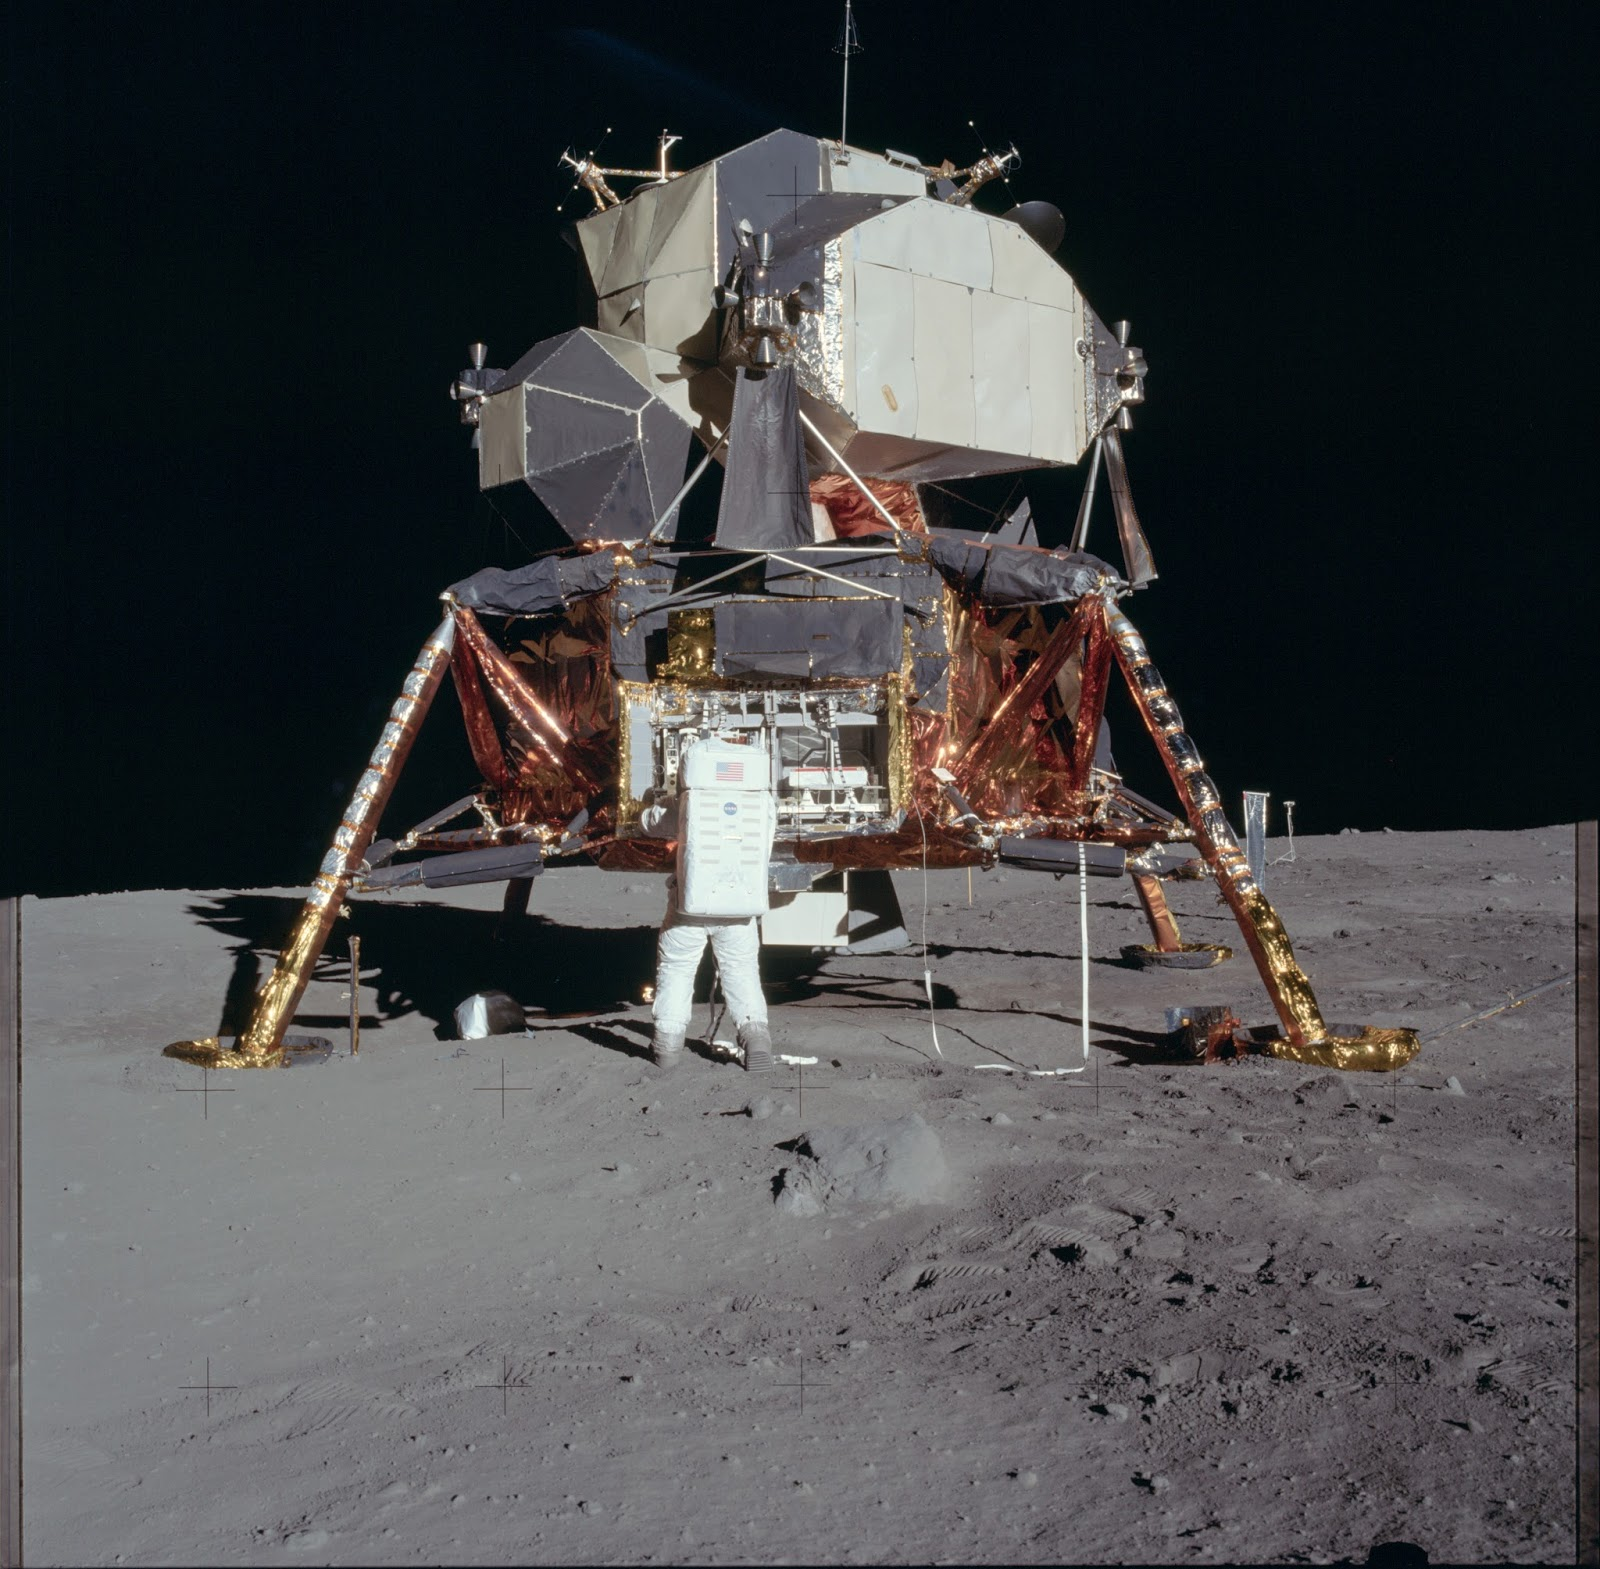 Apollo 11 shot on the